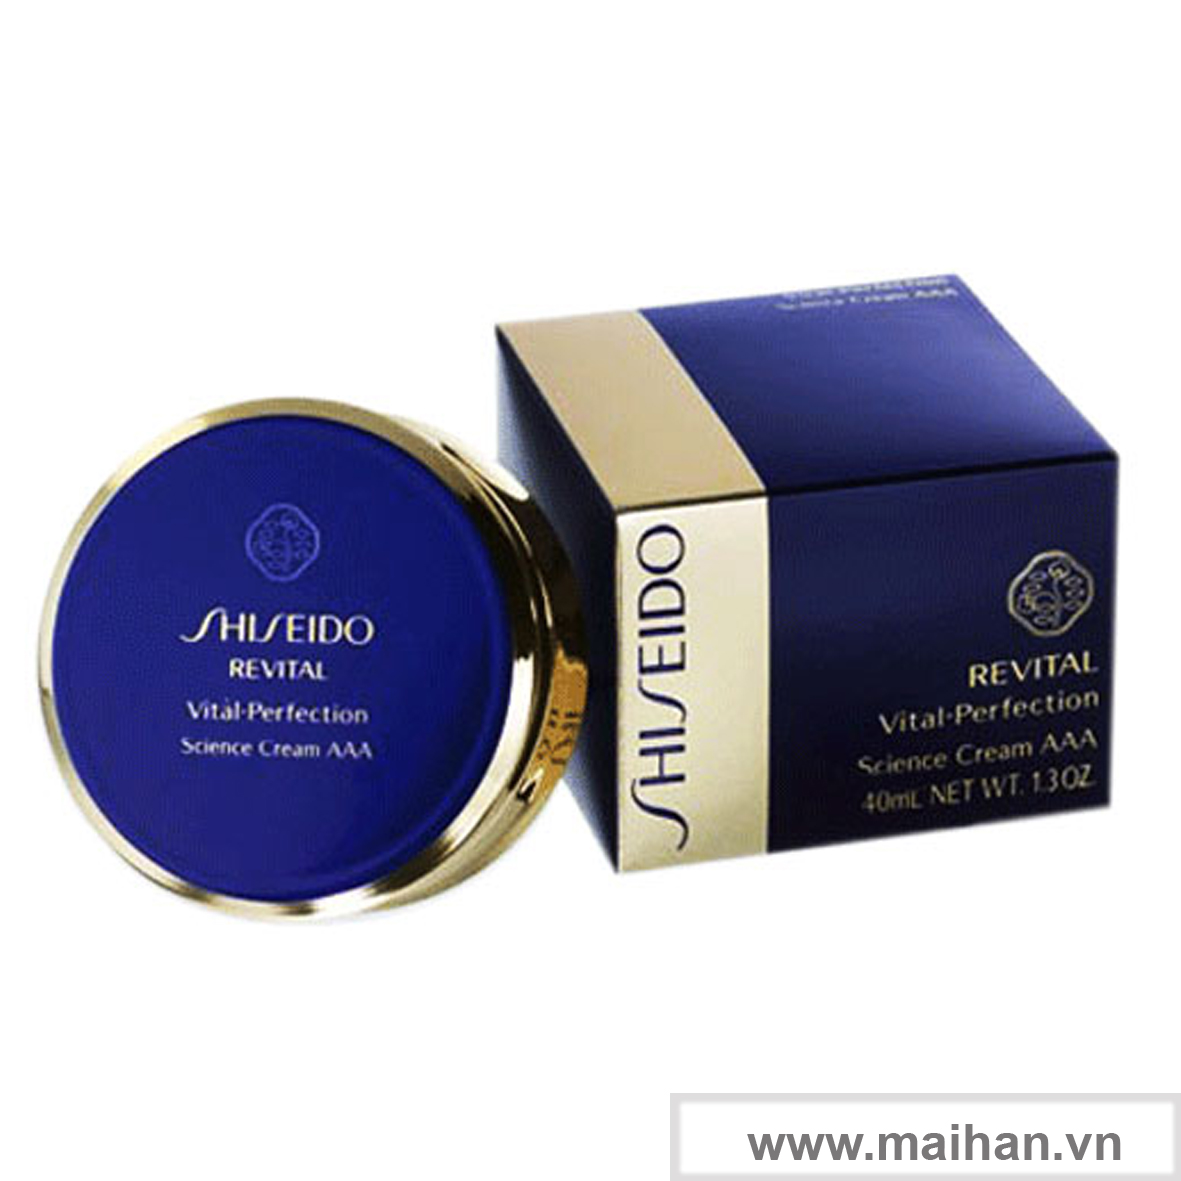 Kem chống nhăn Shiseido Revital Vital-Perfection Science Cream AAA